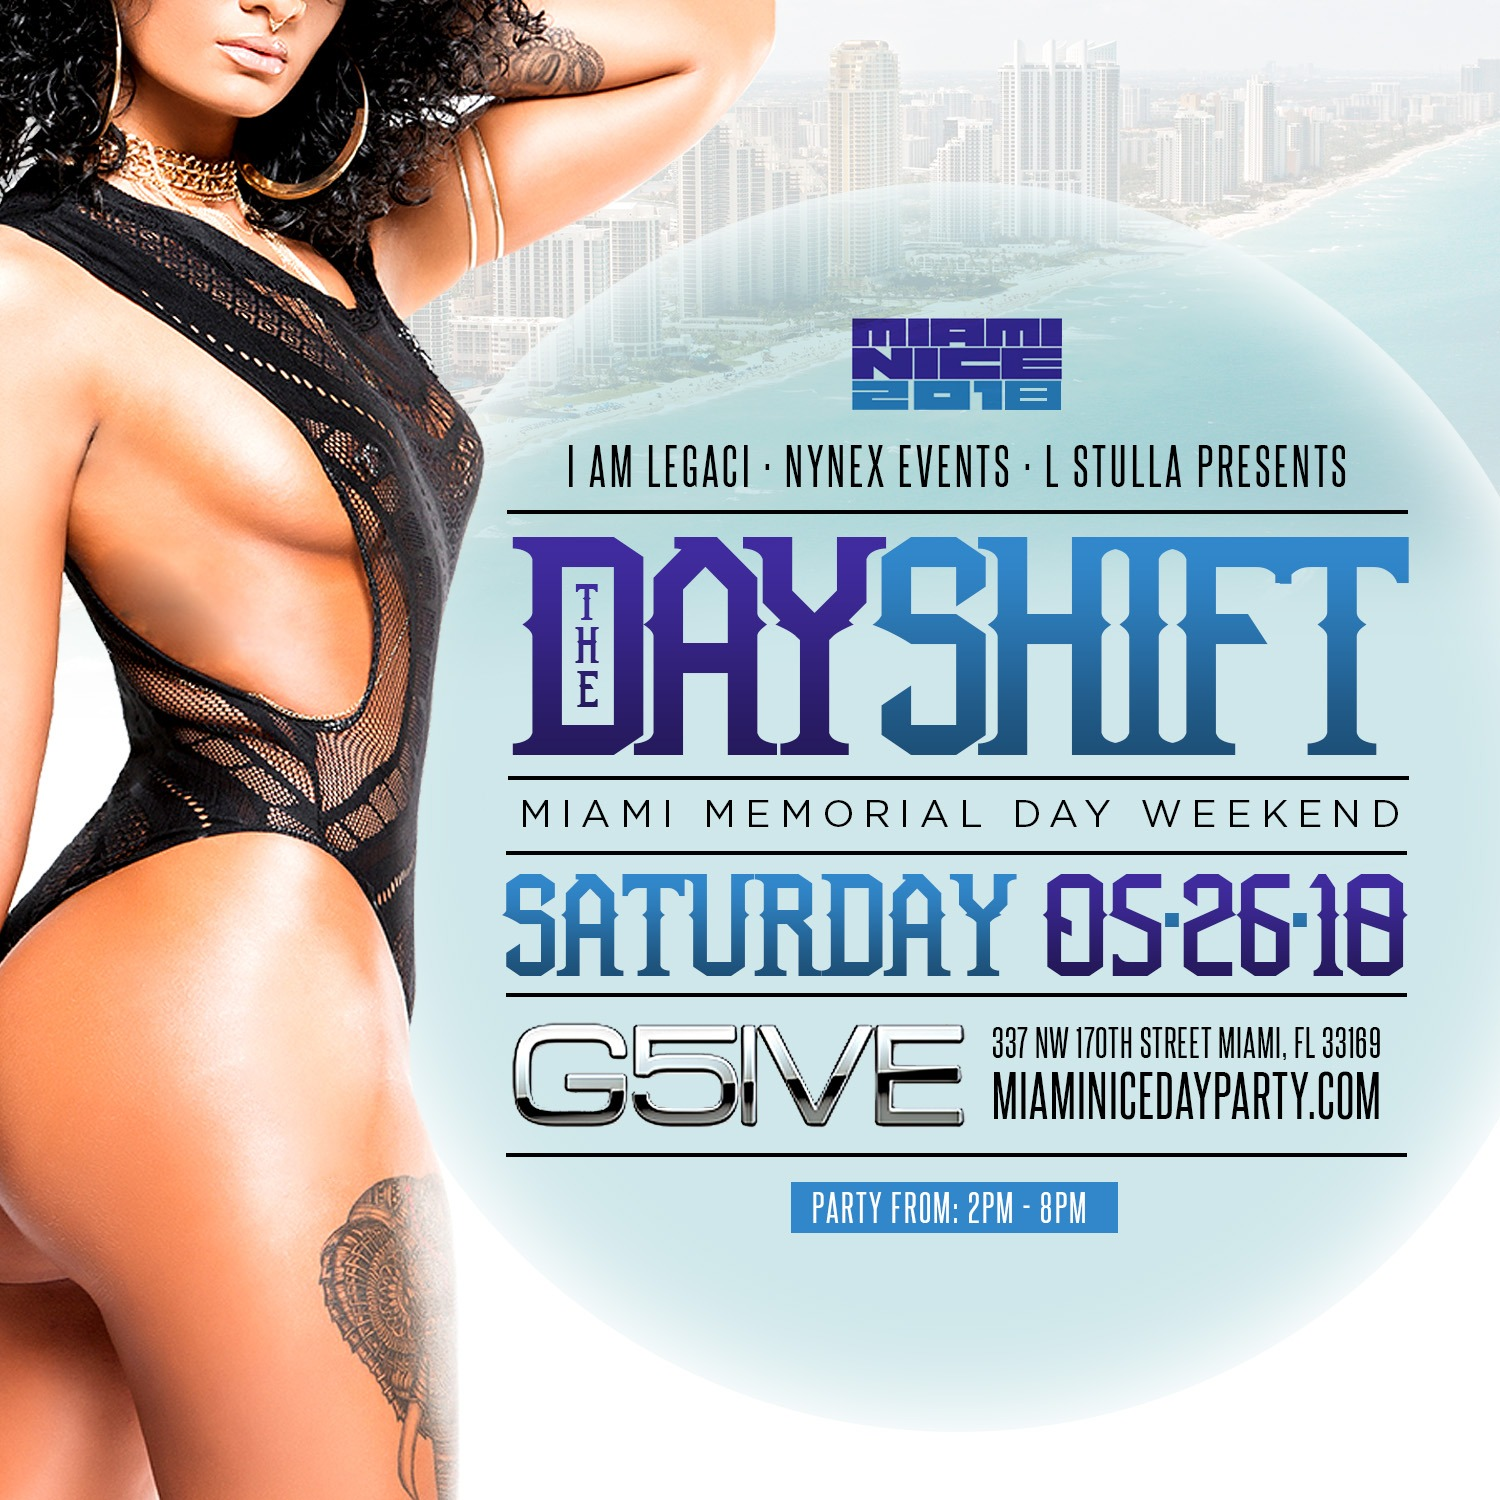 THE DAY SHIFT Miami Memorial Day Weekend 2018